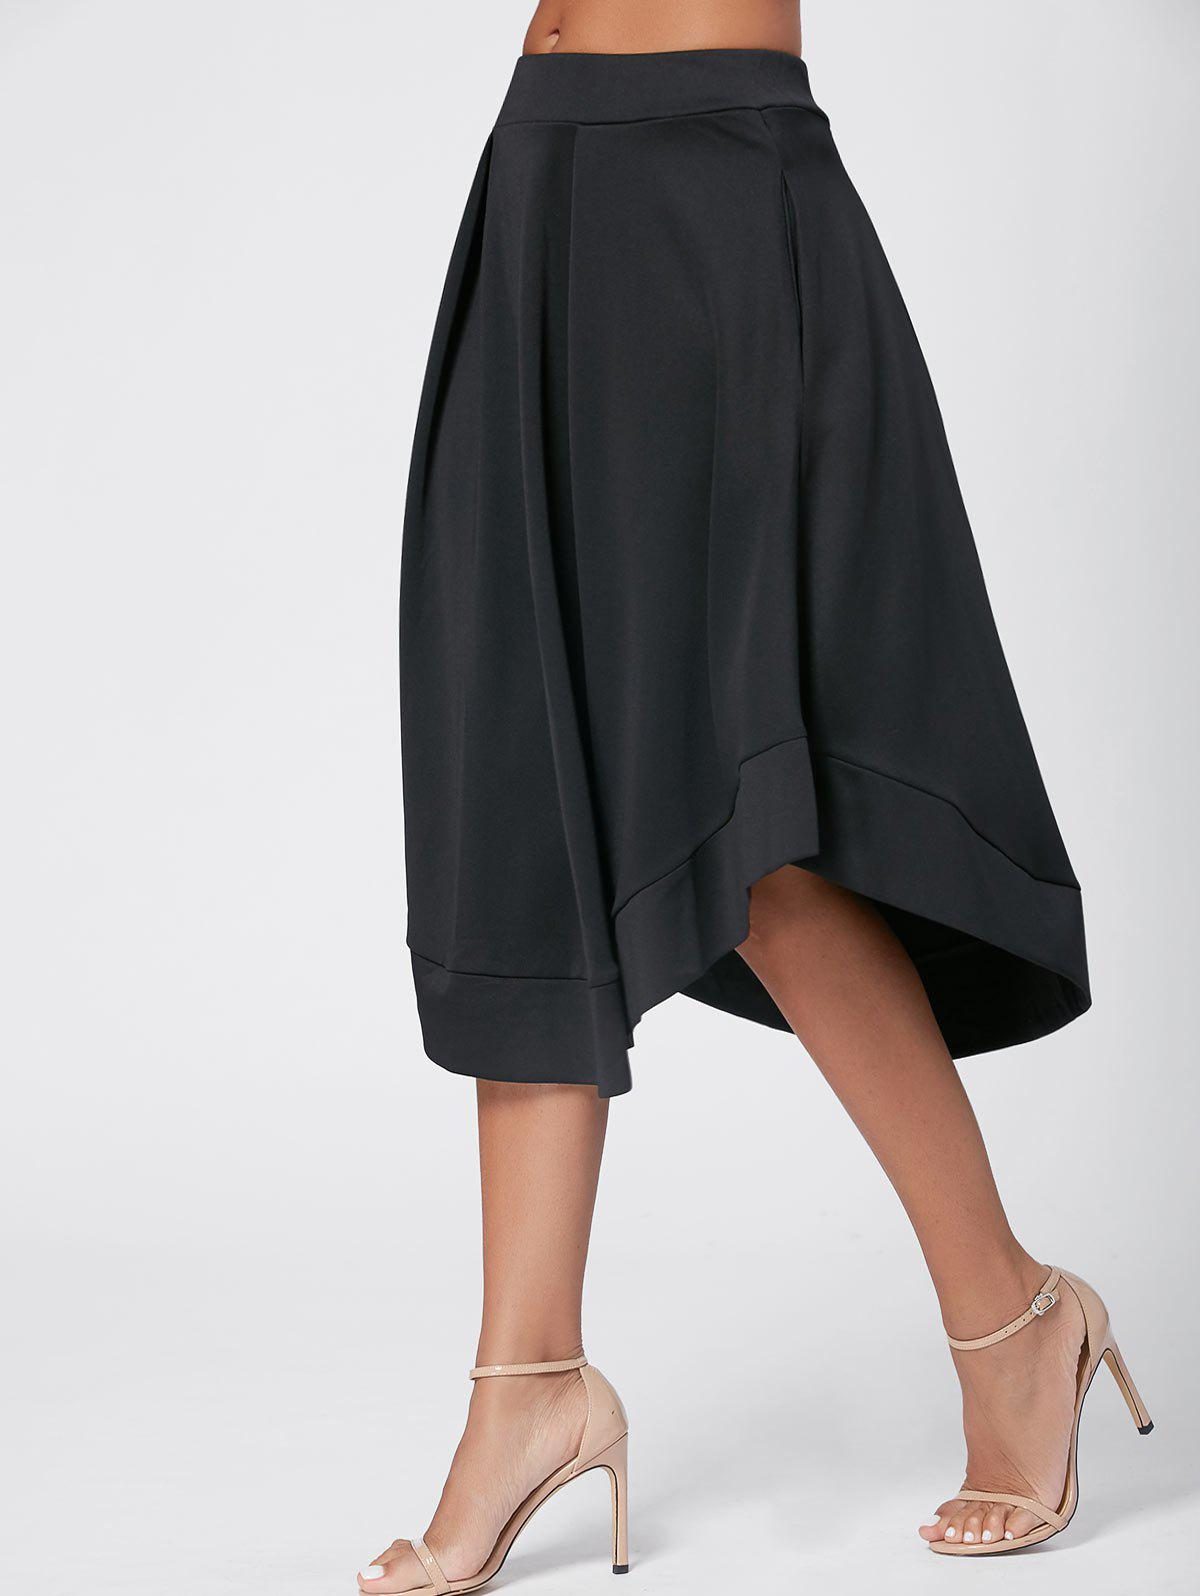 High Waist Midi Flared Skirt - BLACK L